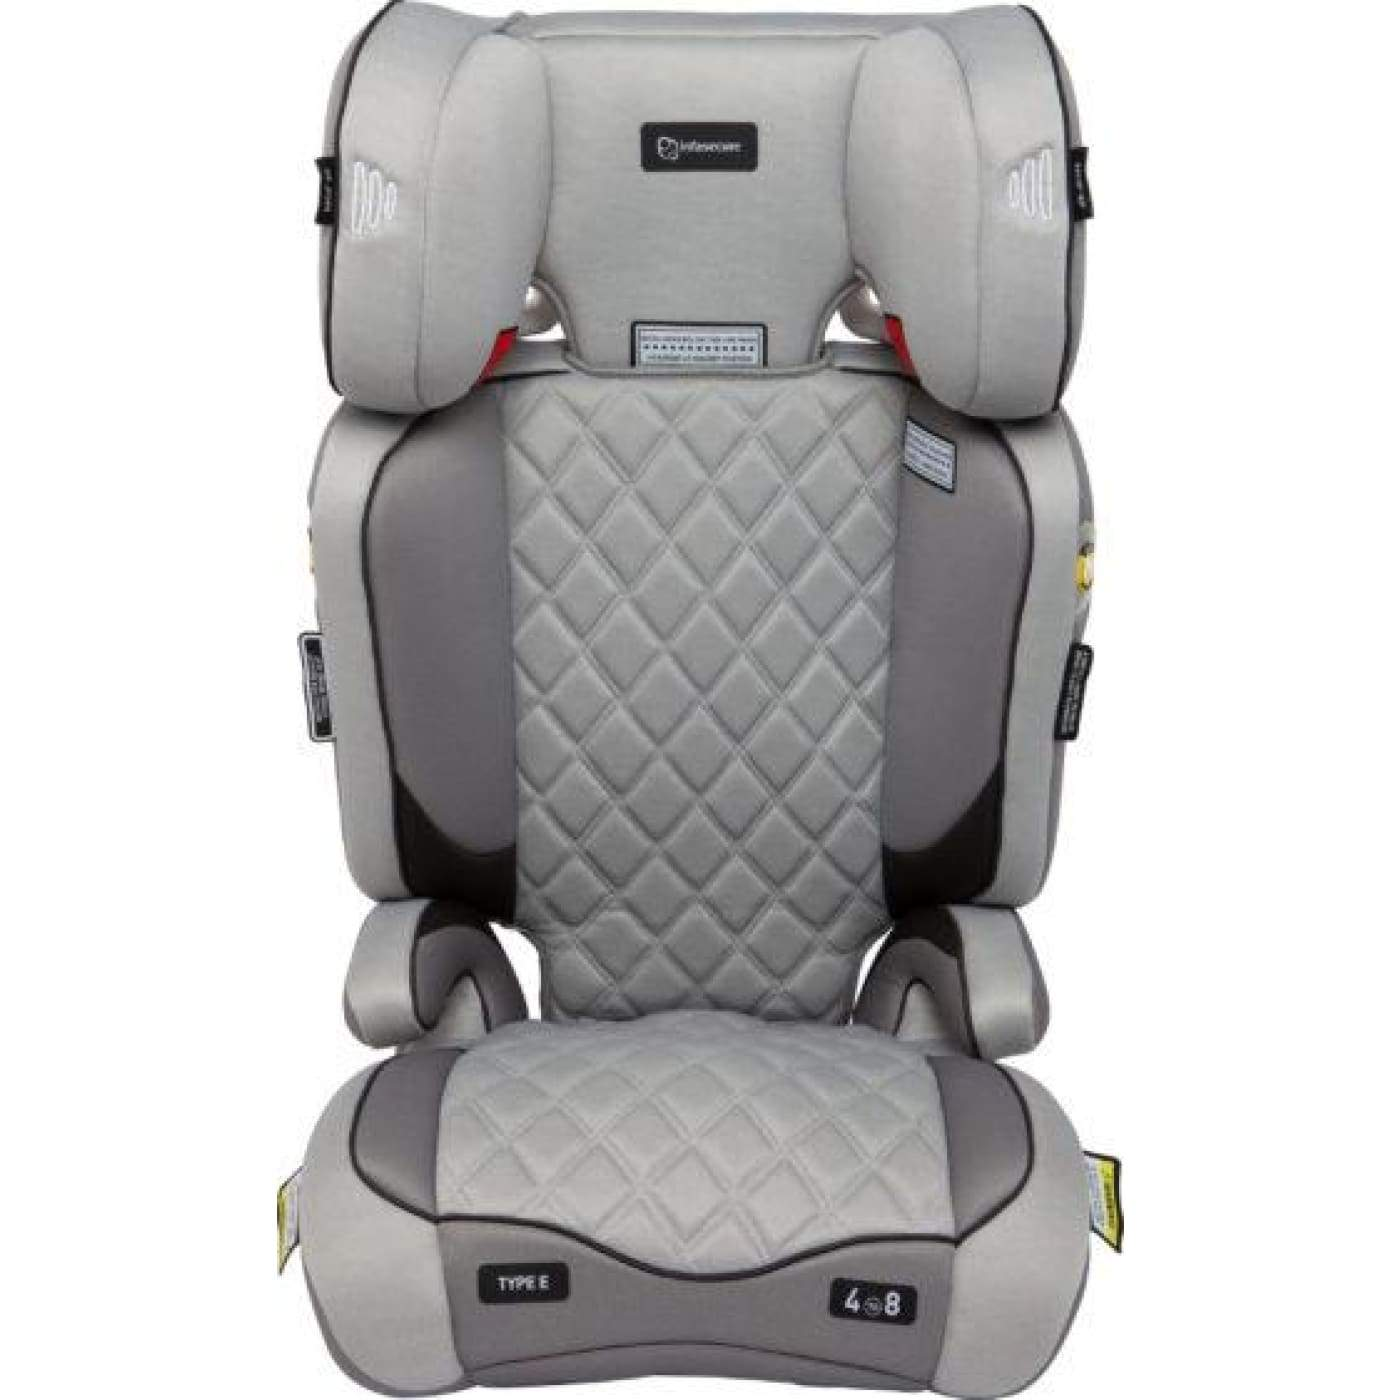 Infasecure Aspire Premium Booster Seat 4-8 years - DAY - Booster Seats (4-8Y)